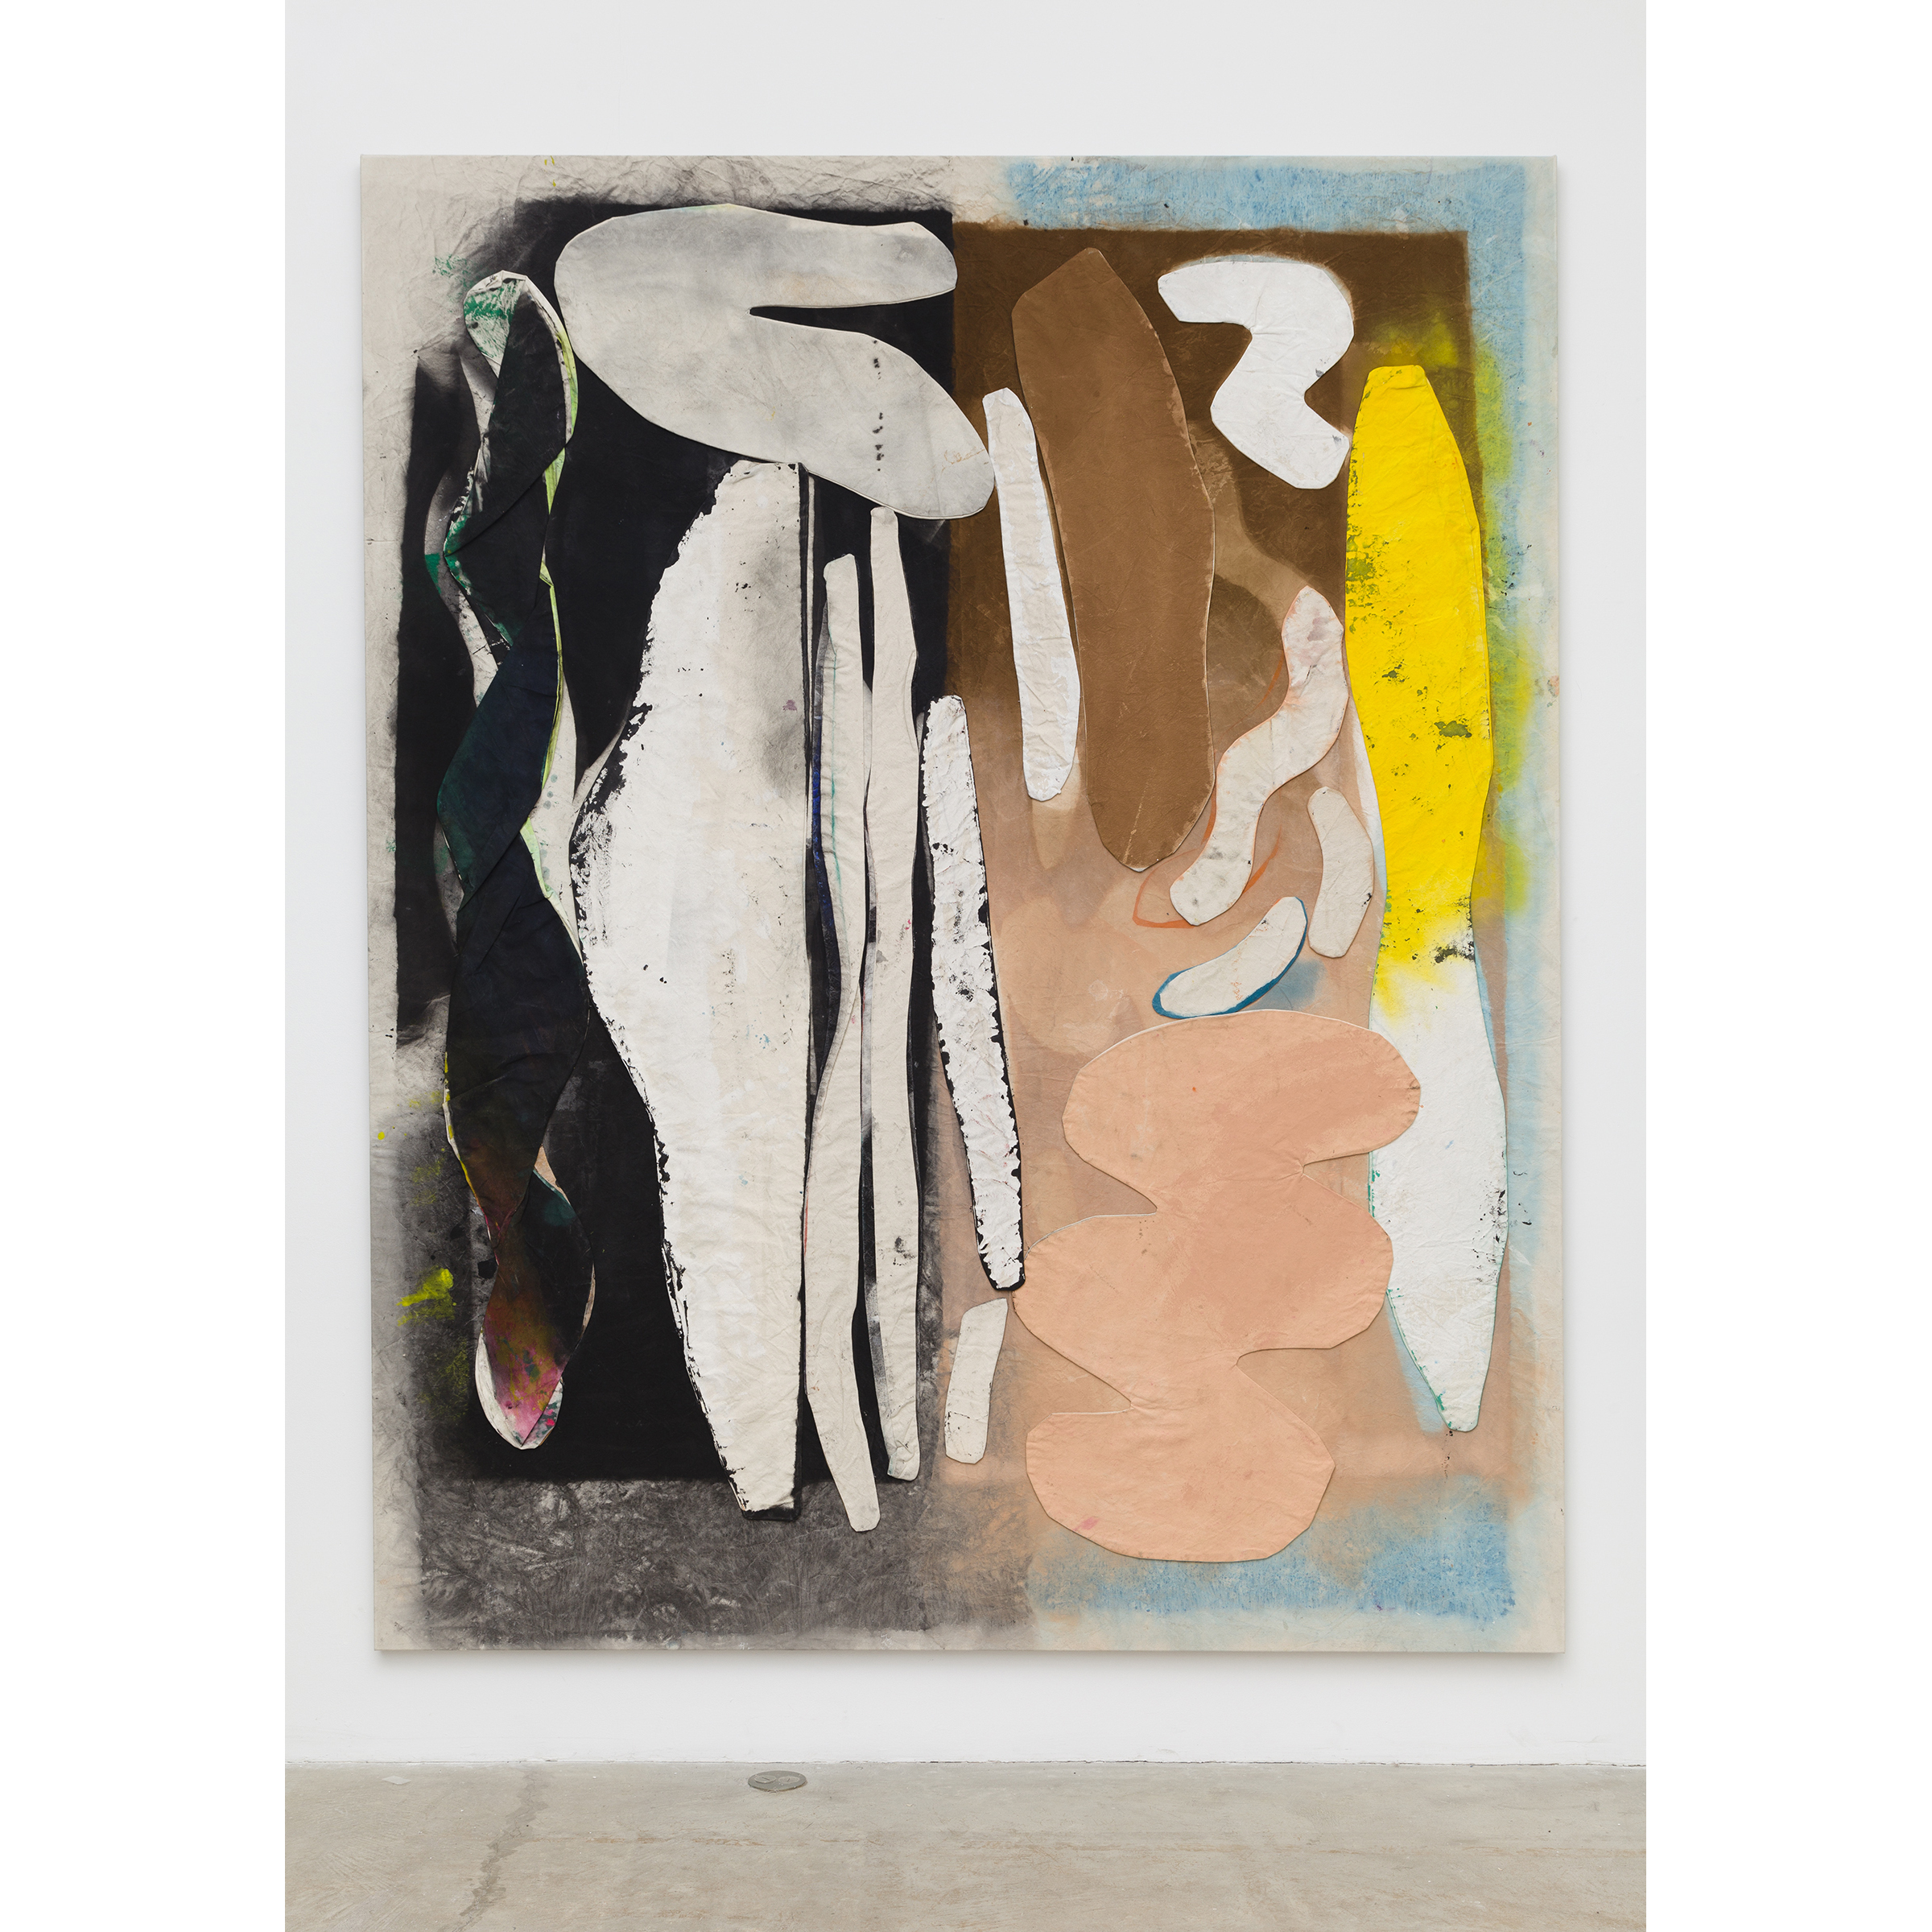 Jess Fuller, She Has Transcendental Style , 2014,acrylic, fabric dye and gesso on canvas,104 x 83 in